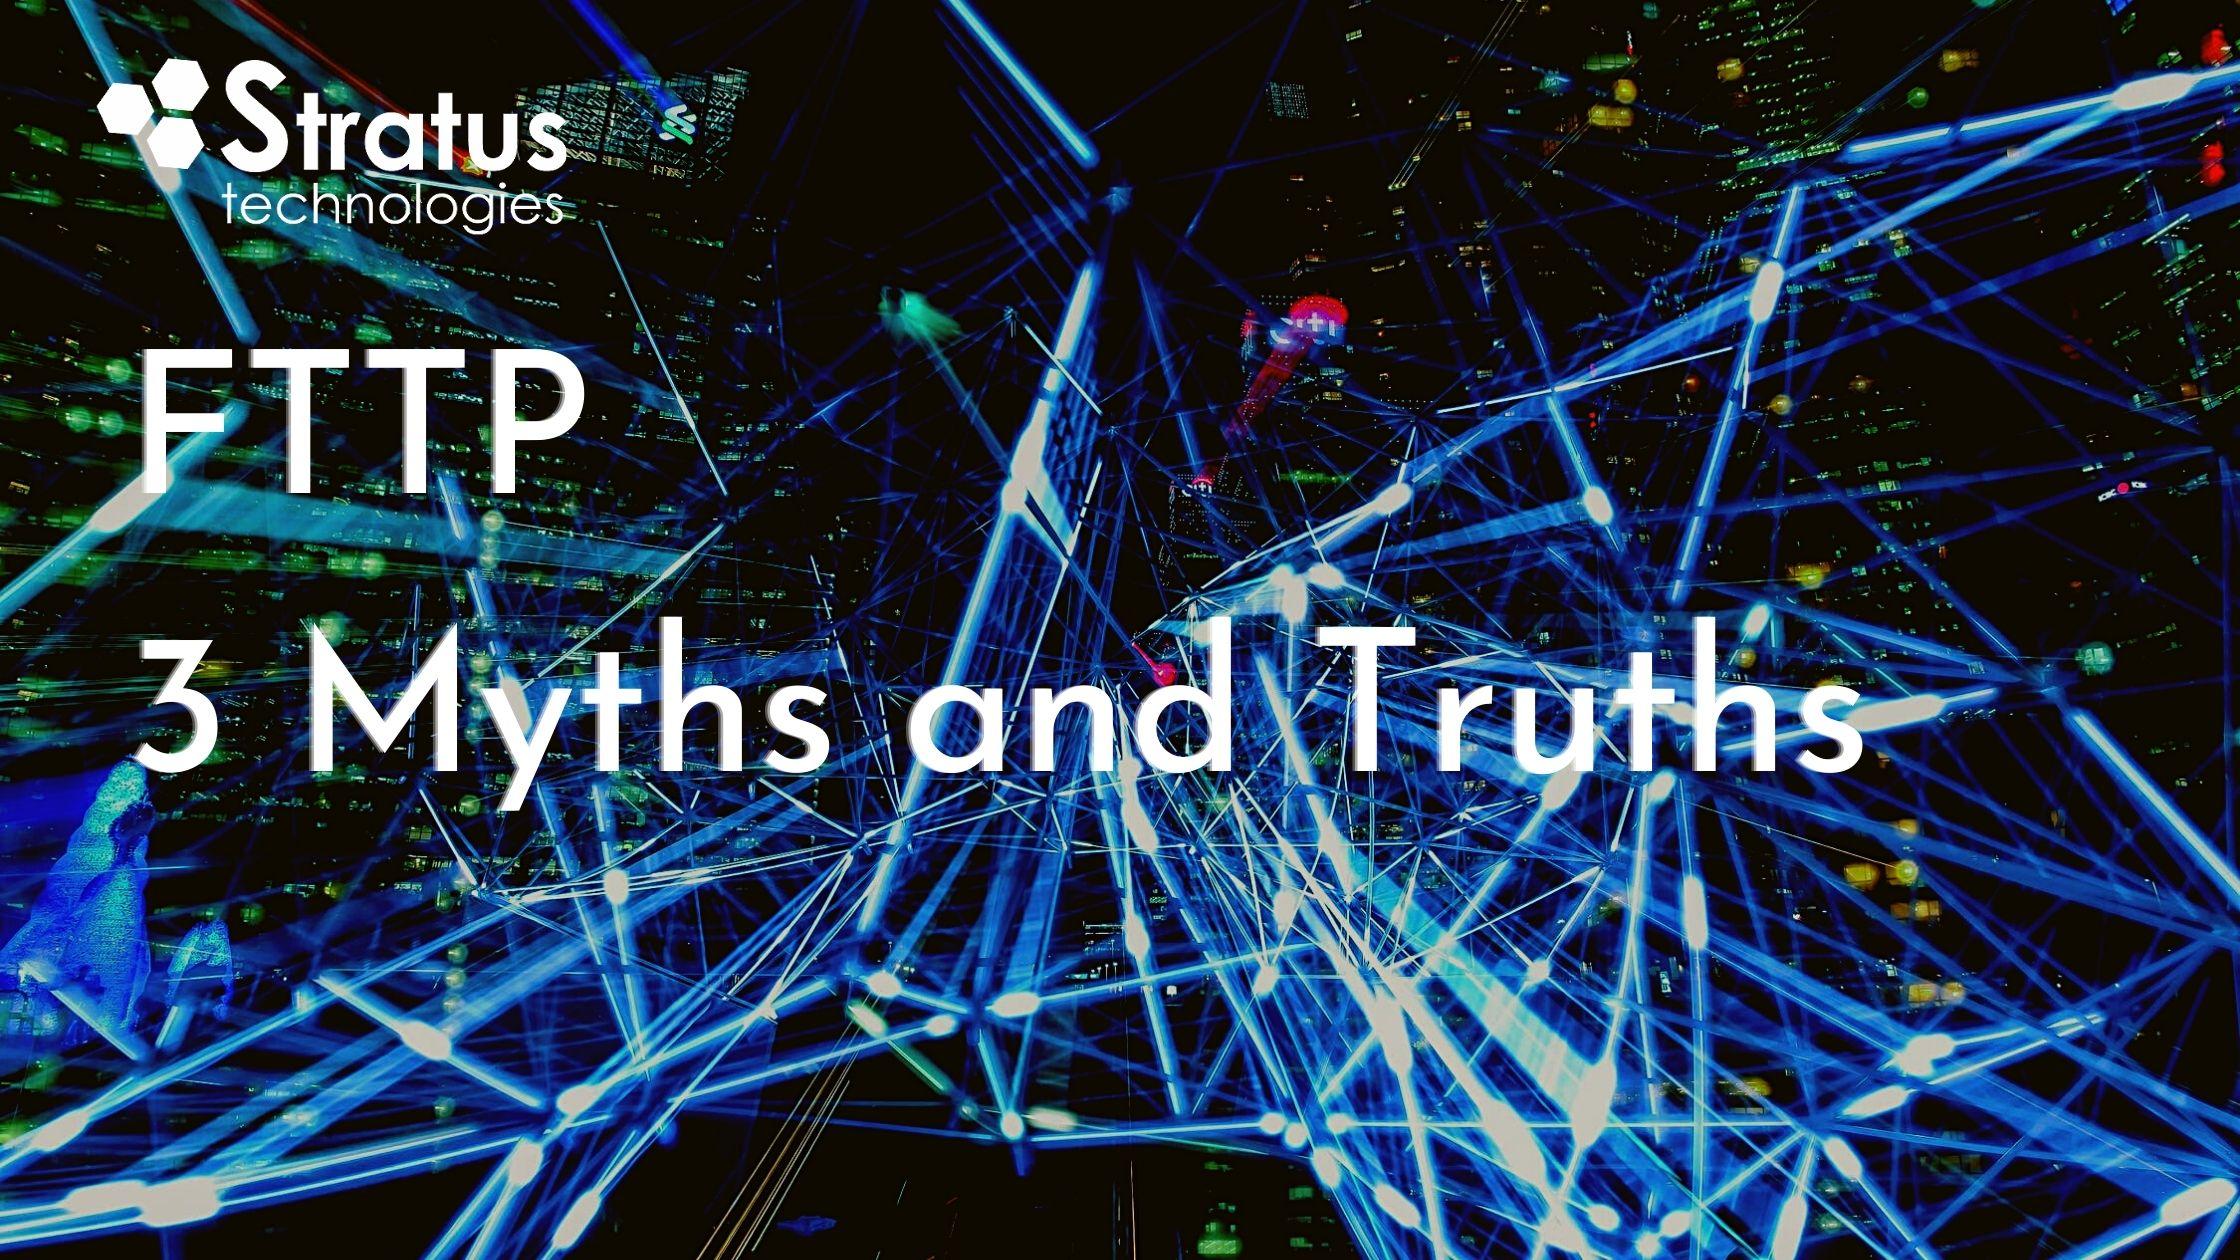 FTTP- 3 Myths and Truths